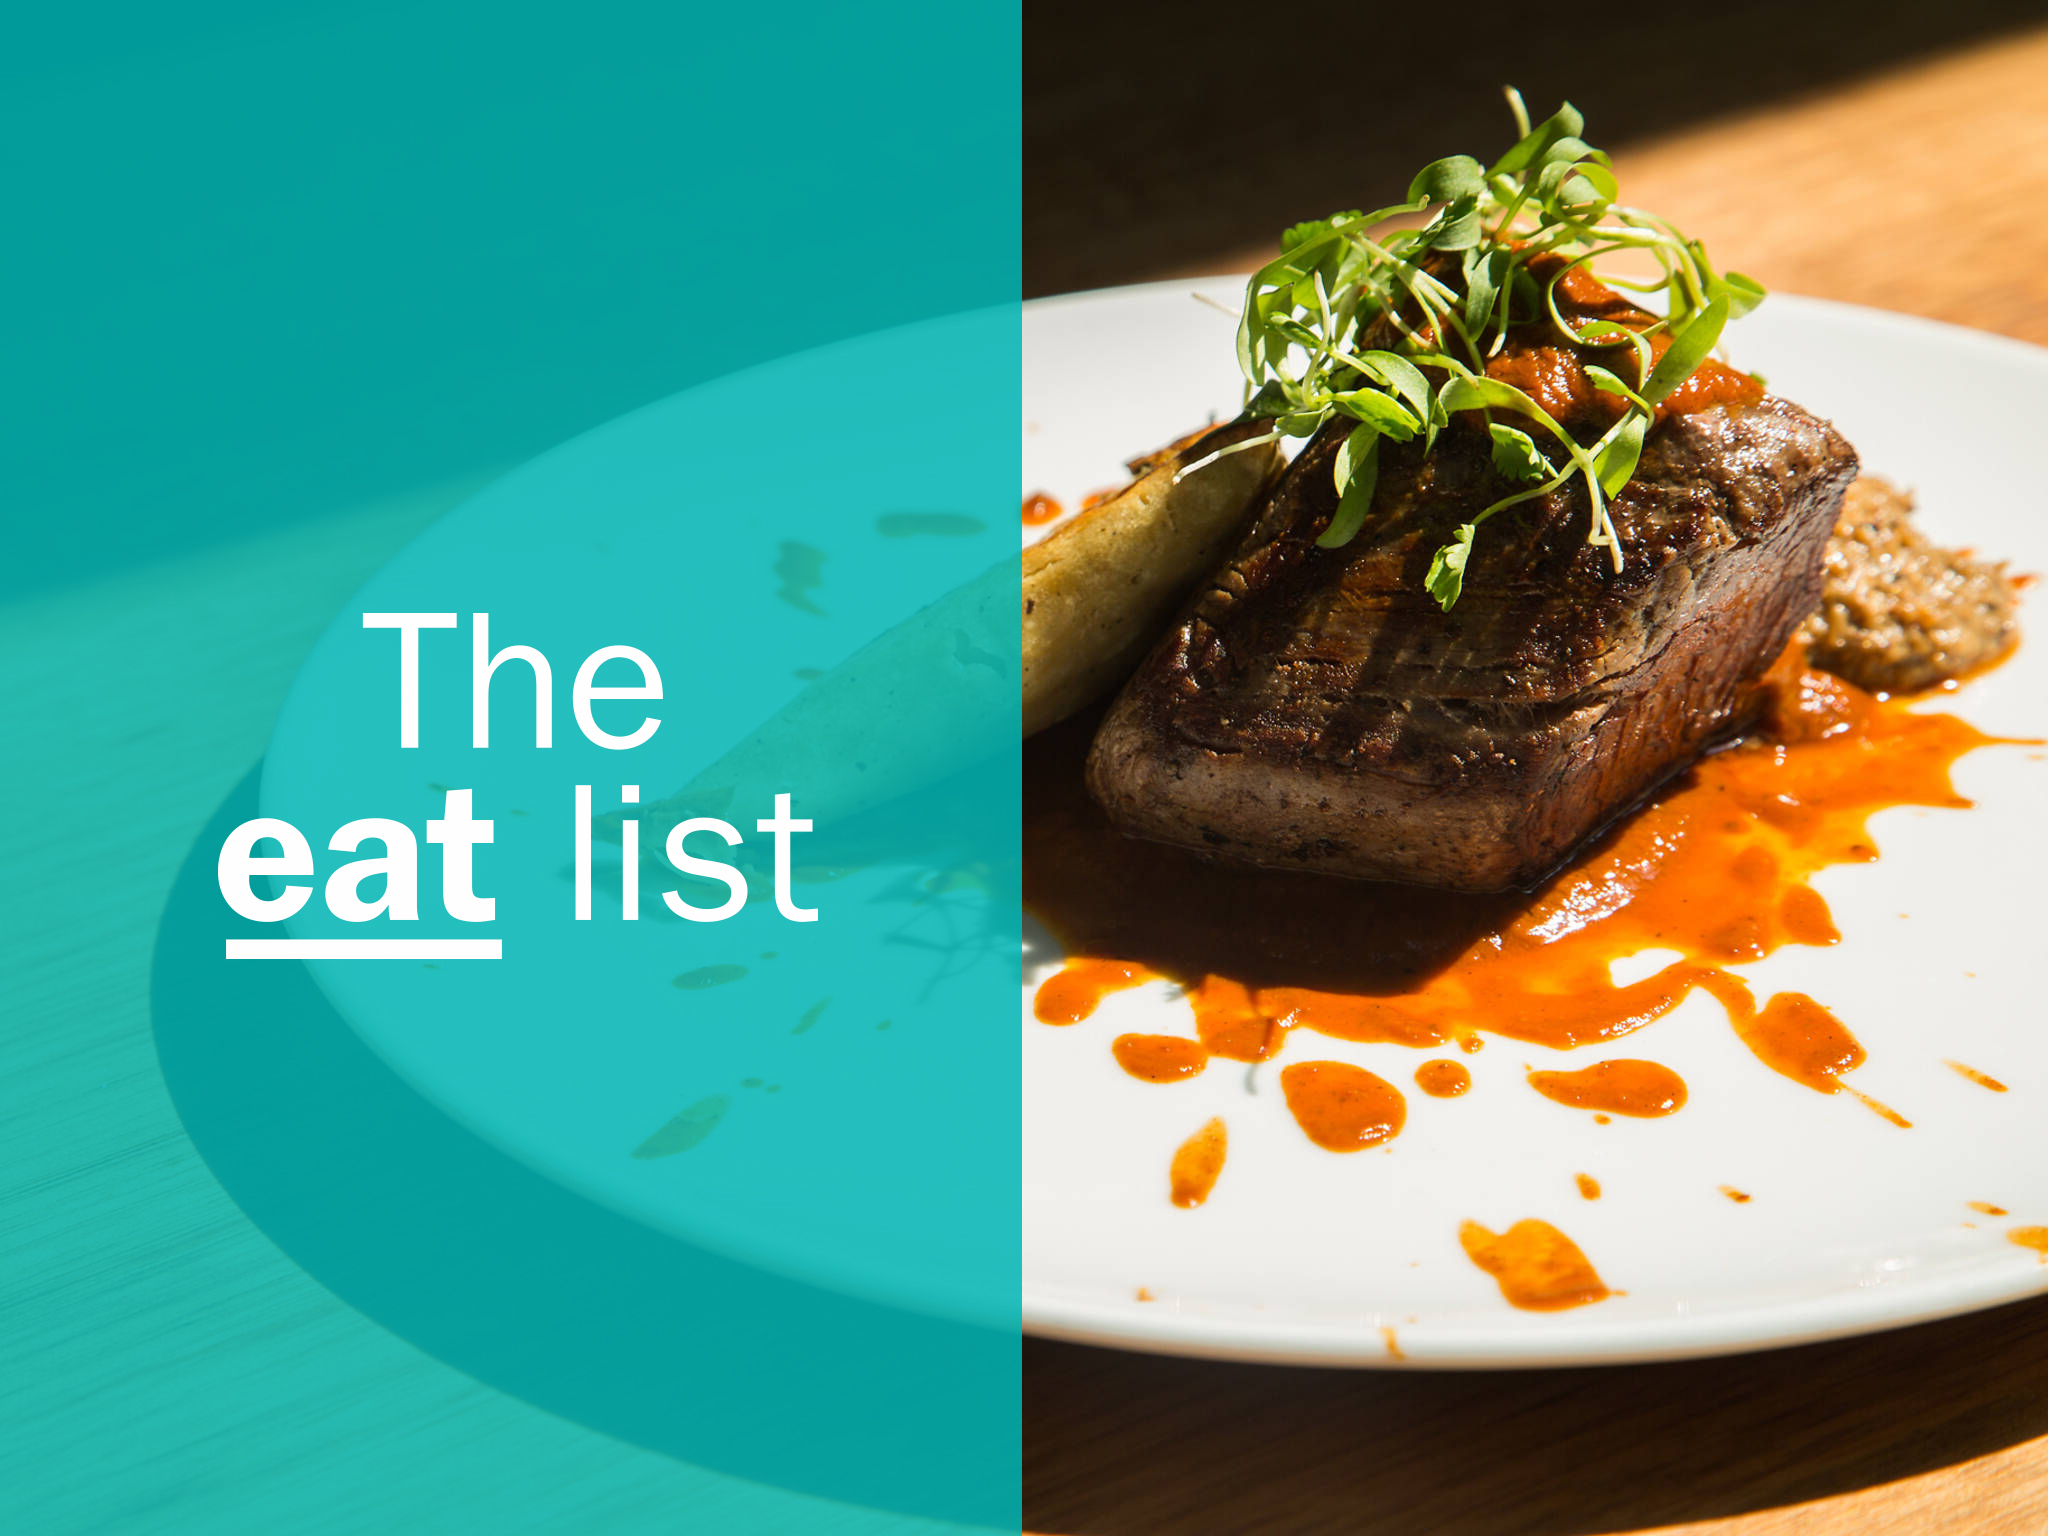 The 25 best restaurants in Mexico City